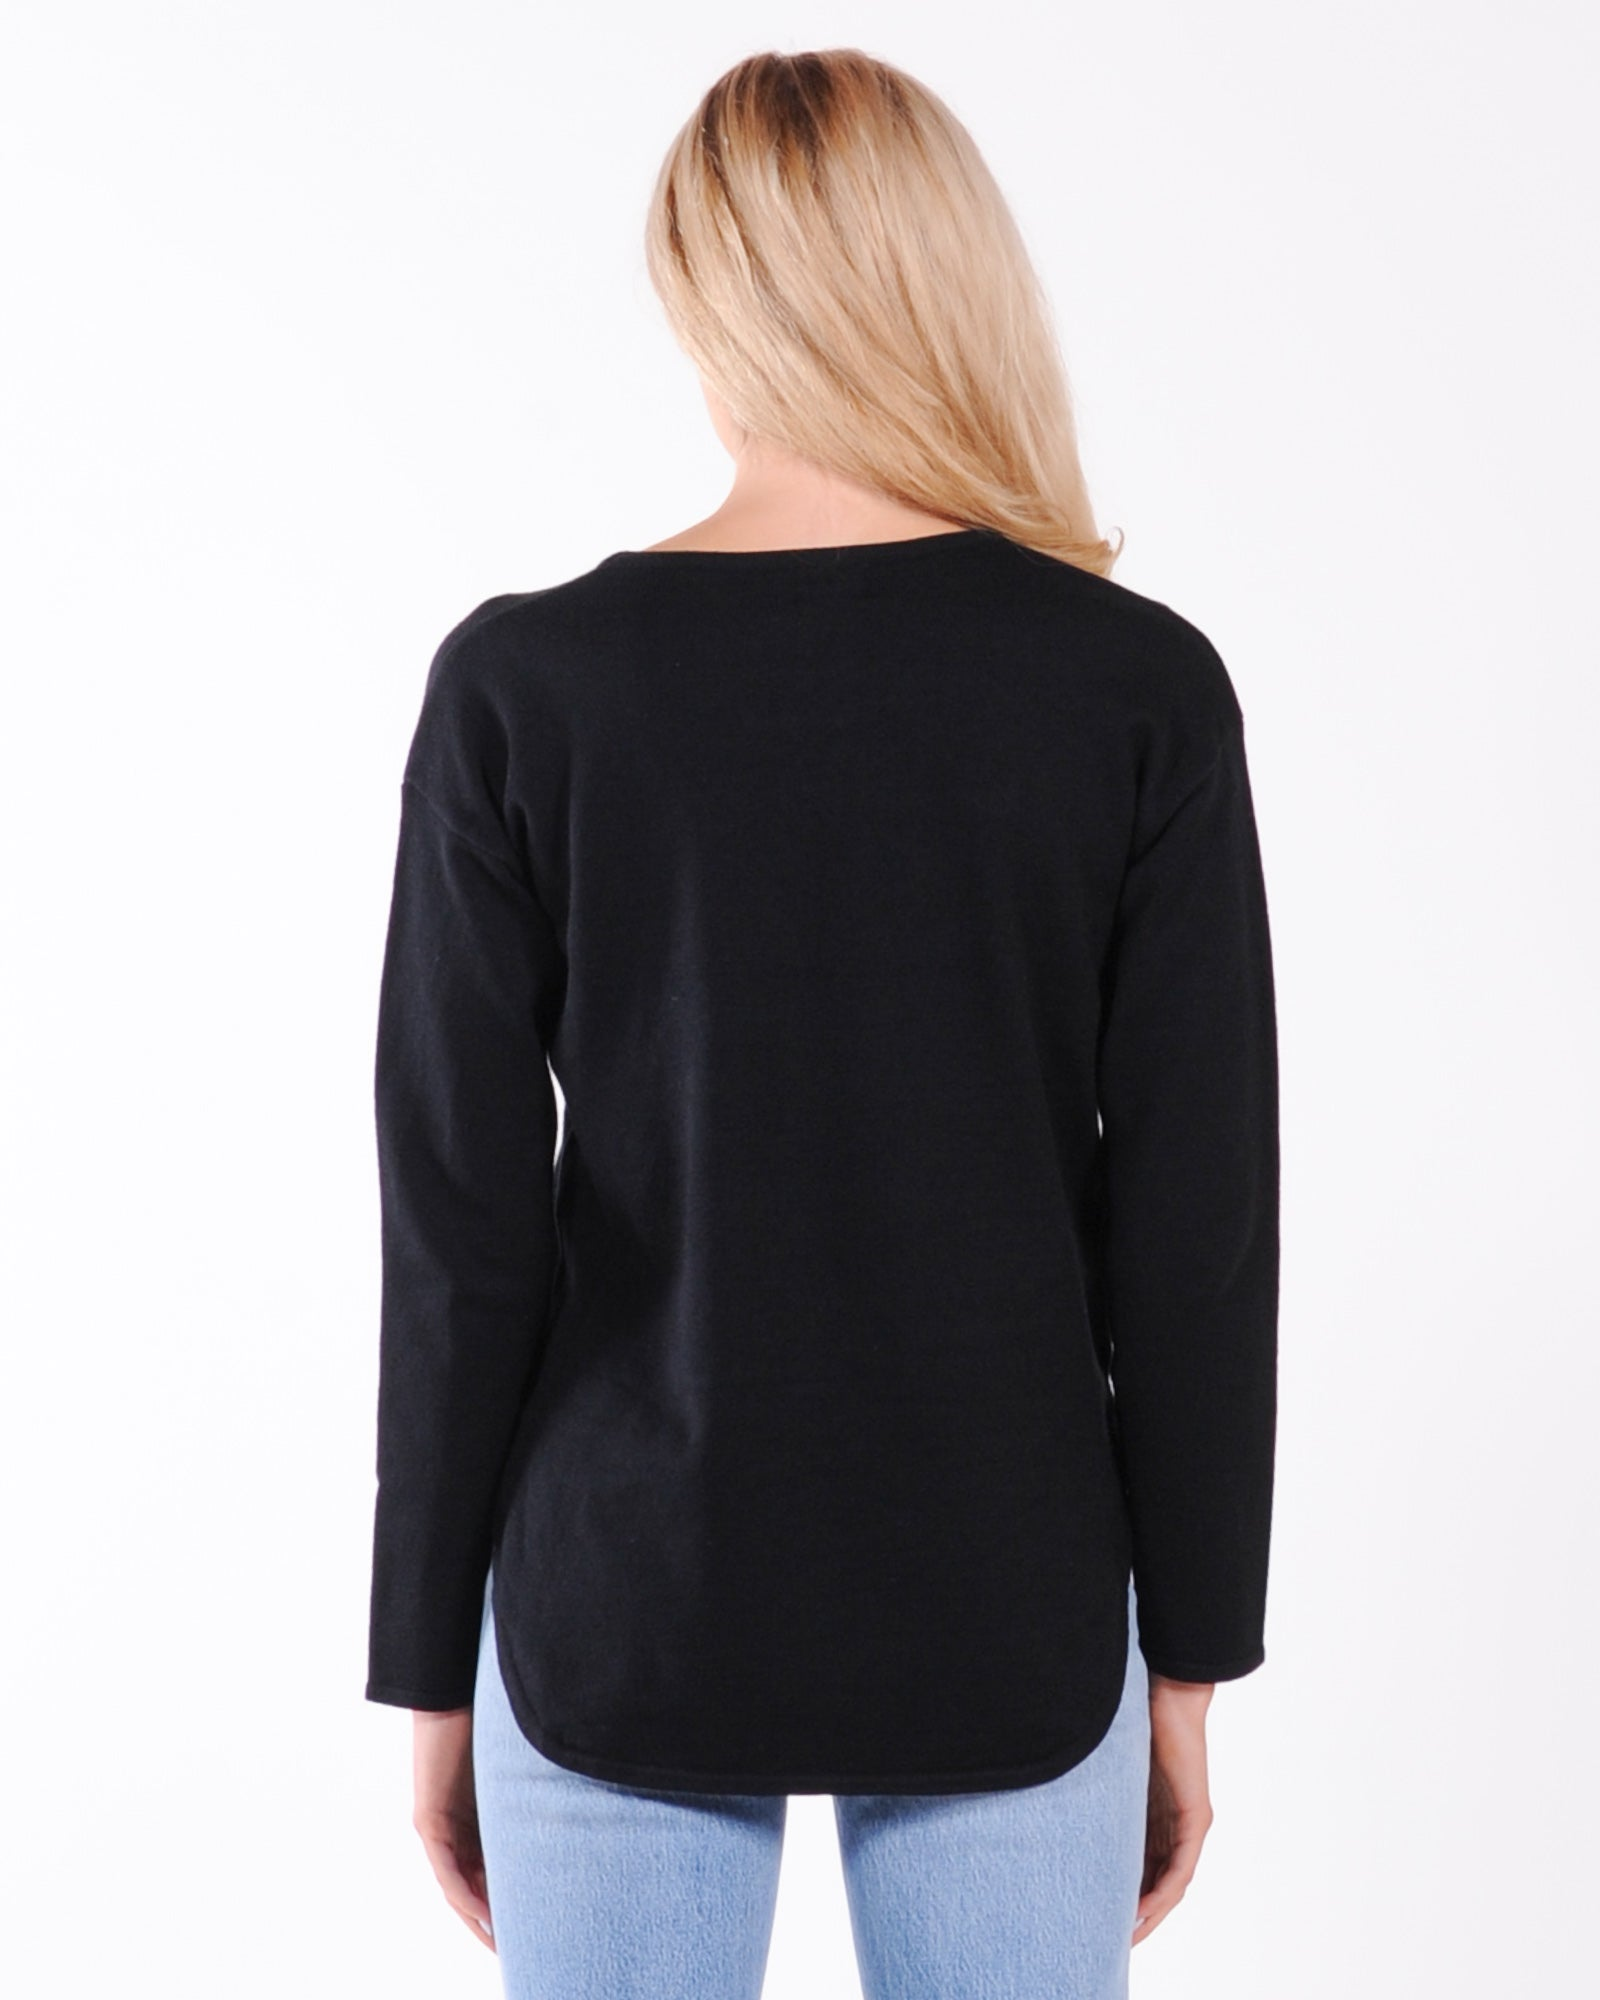 Drop Off Knit Top - Black